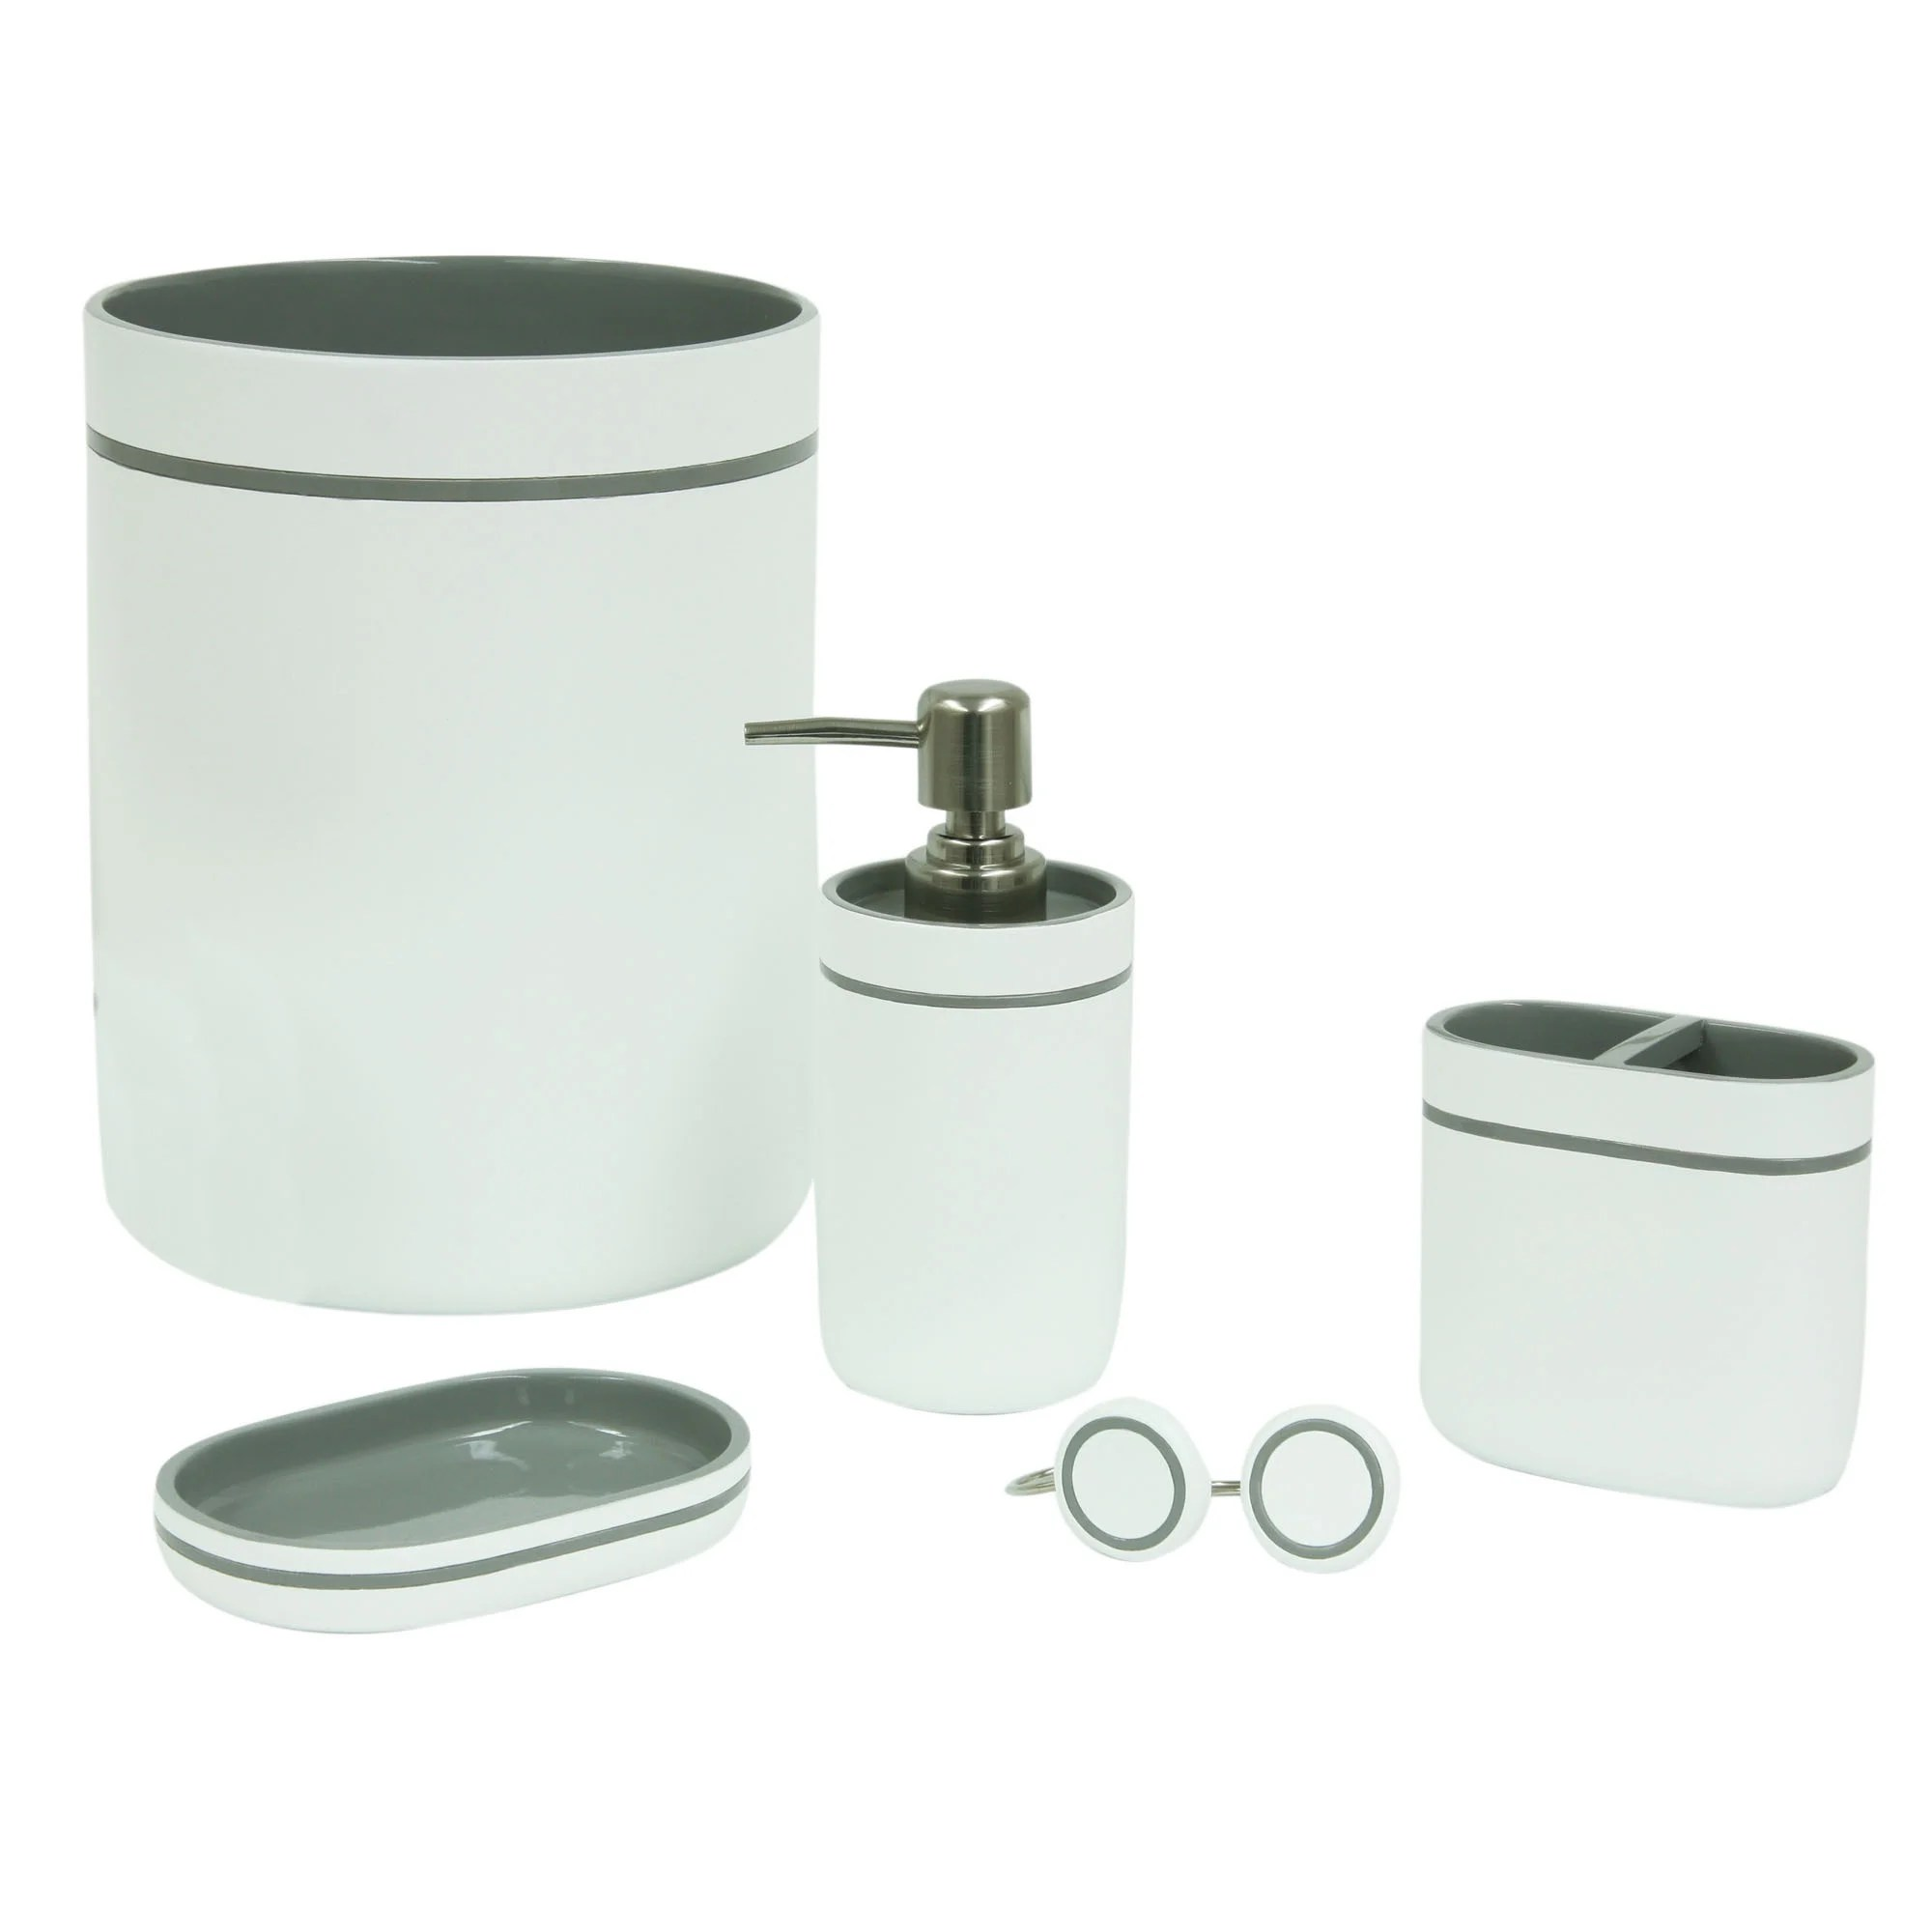 Bath Accessories Details About Portico Grey Bath Accessories 4 Individual Options Available